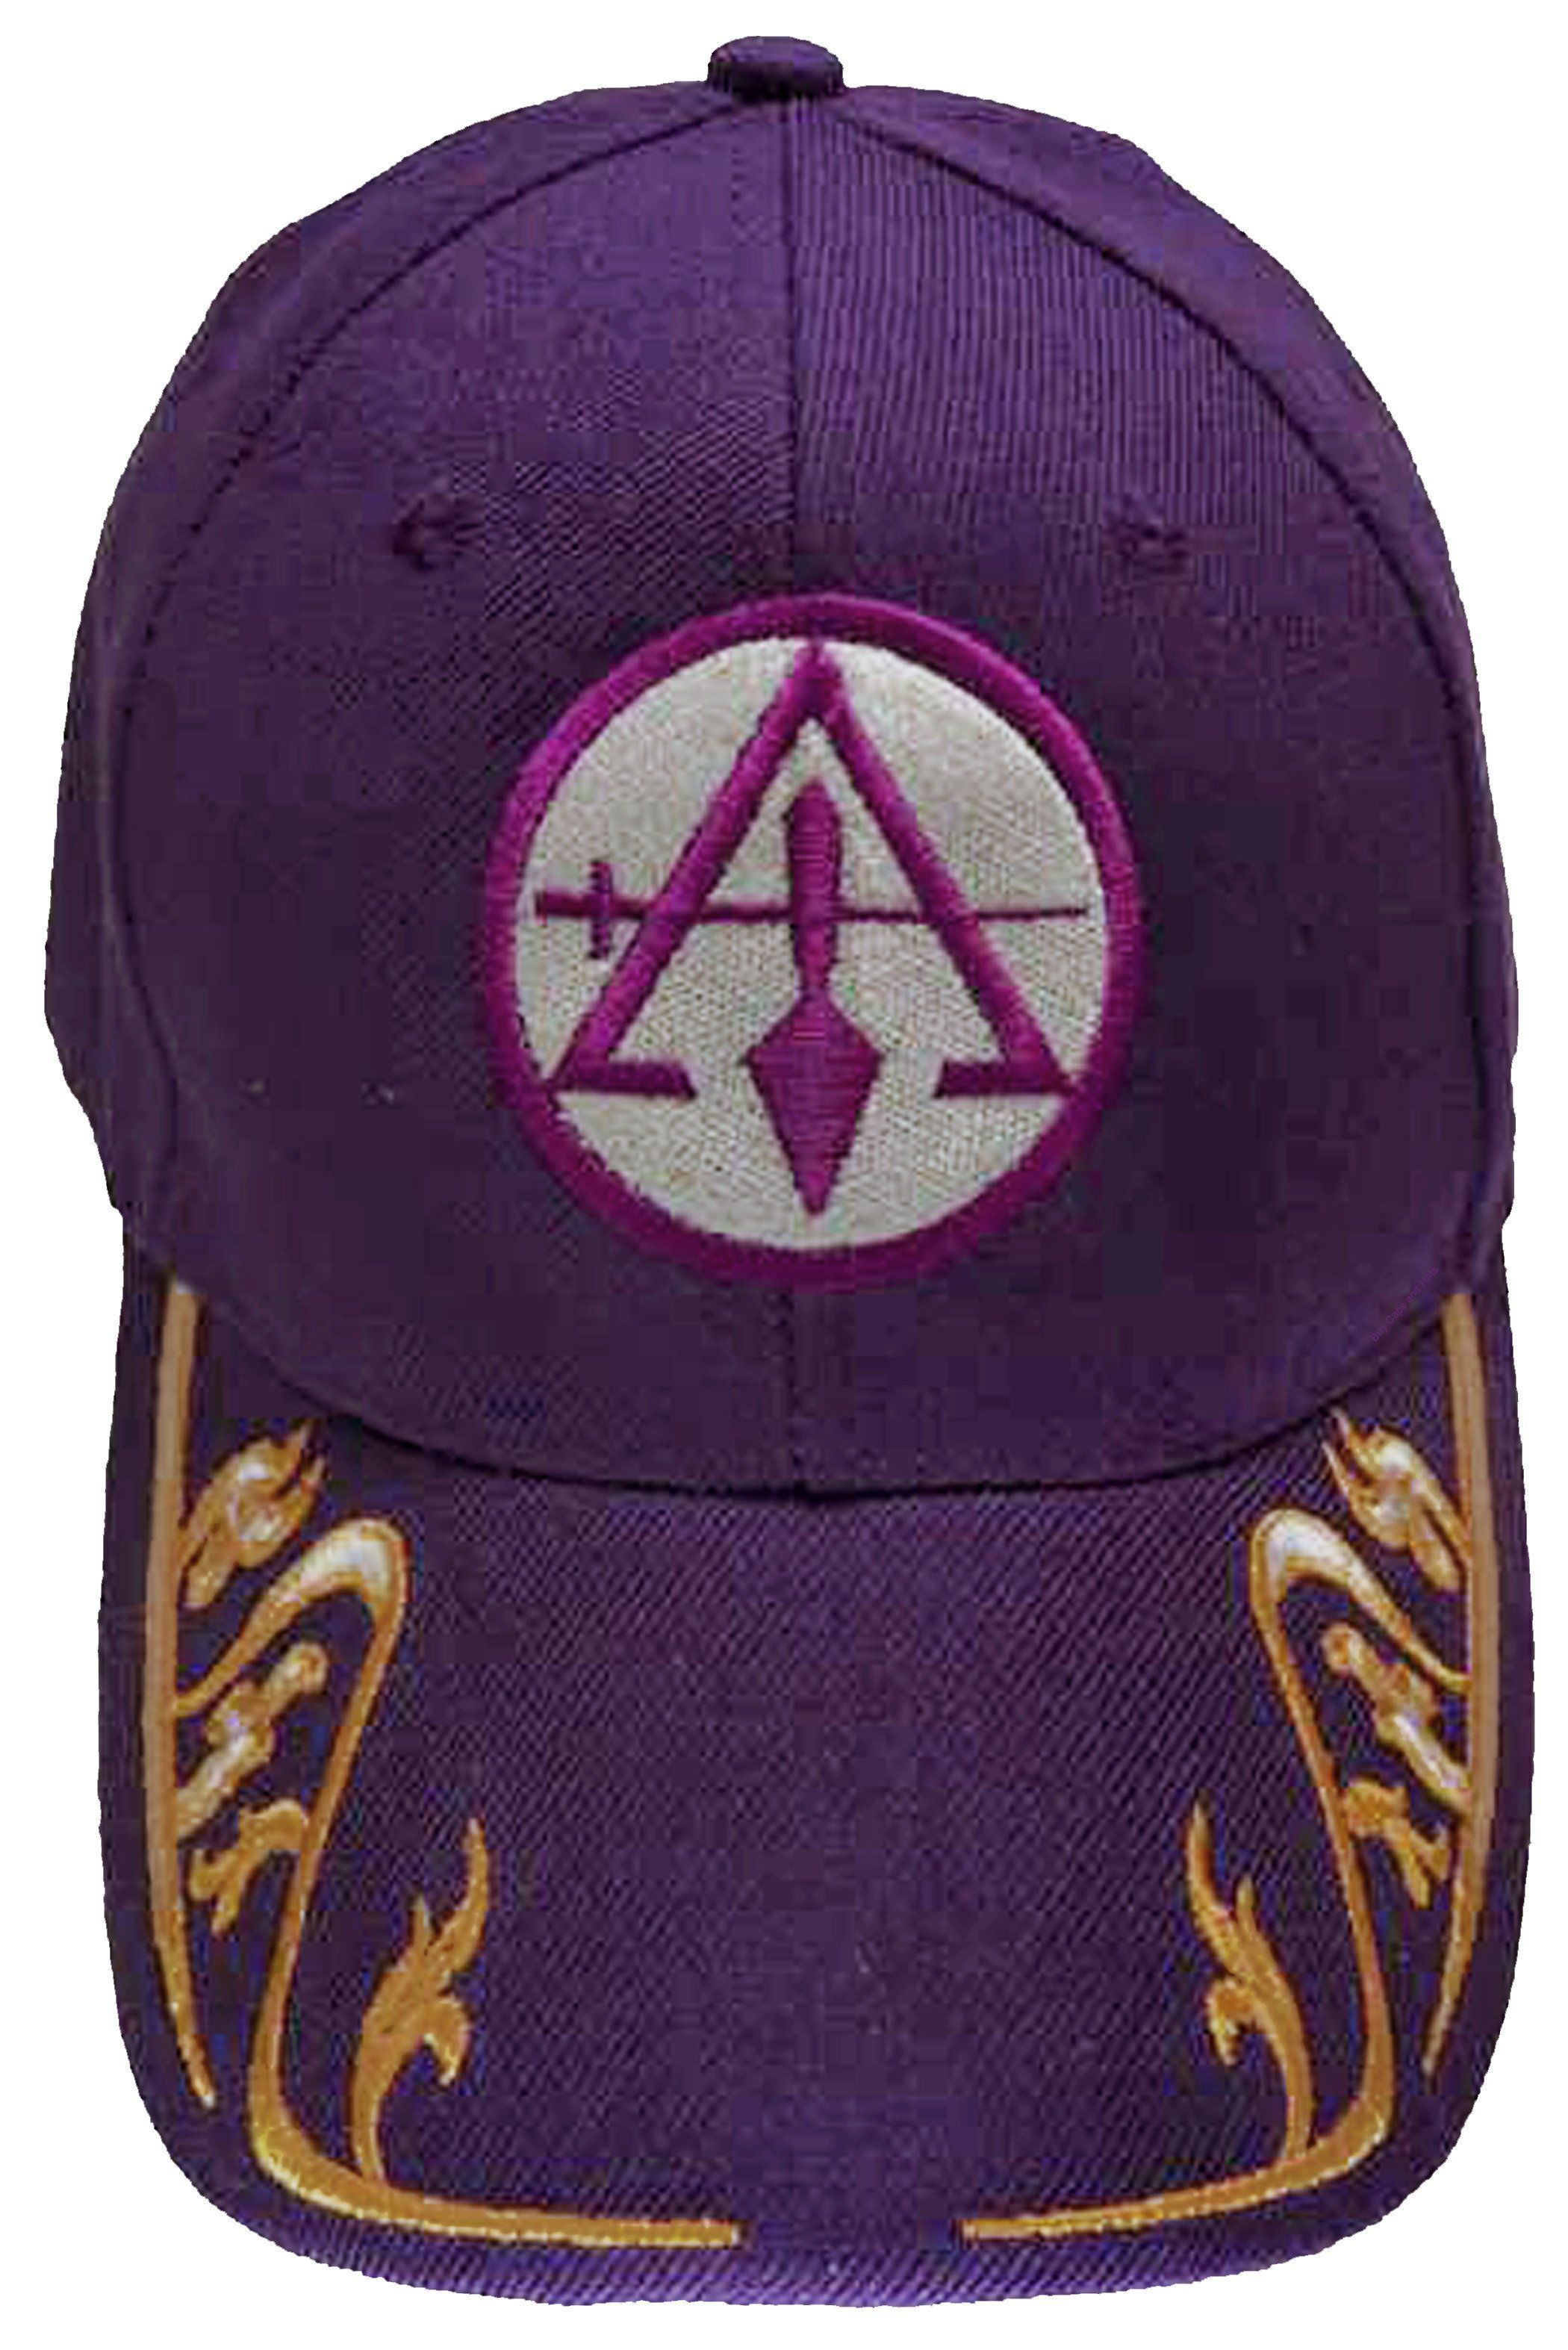 Council of Cryptic Masons Cap Mason Purple and Gold Hat